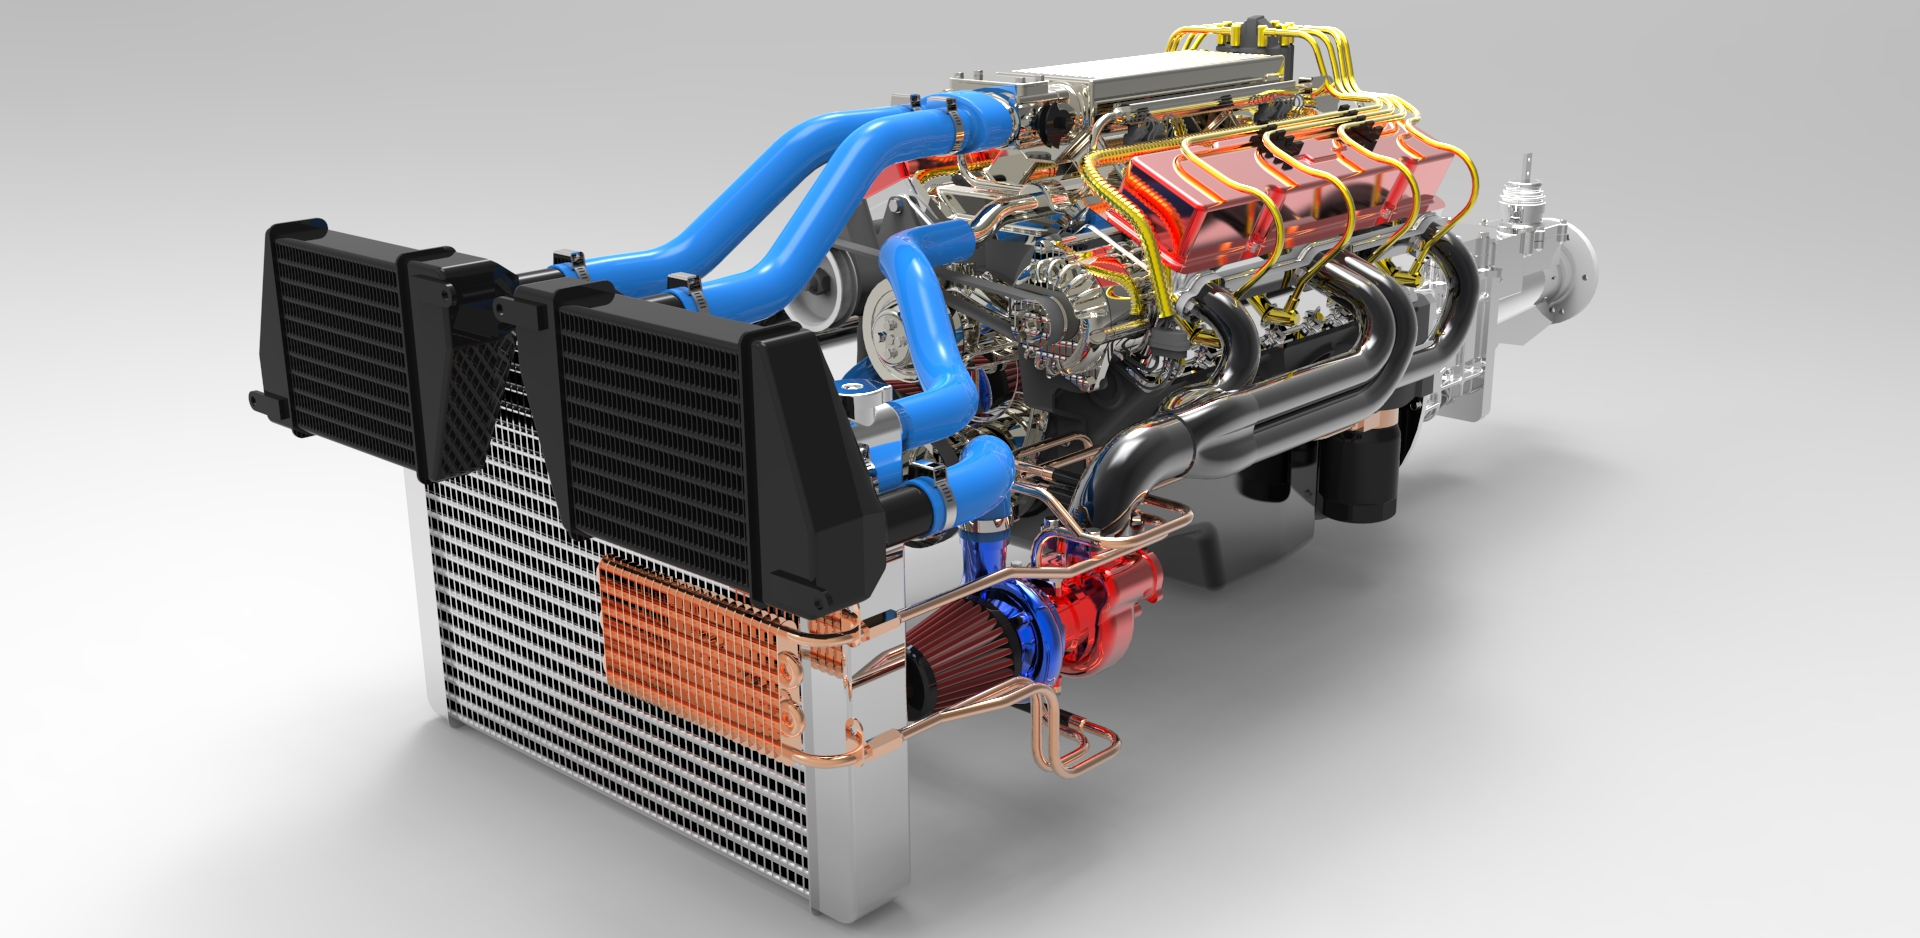 Supercharged Twin Turbo v8 Chevrolet v8 Twin Turbo